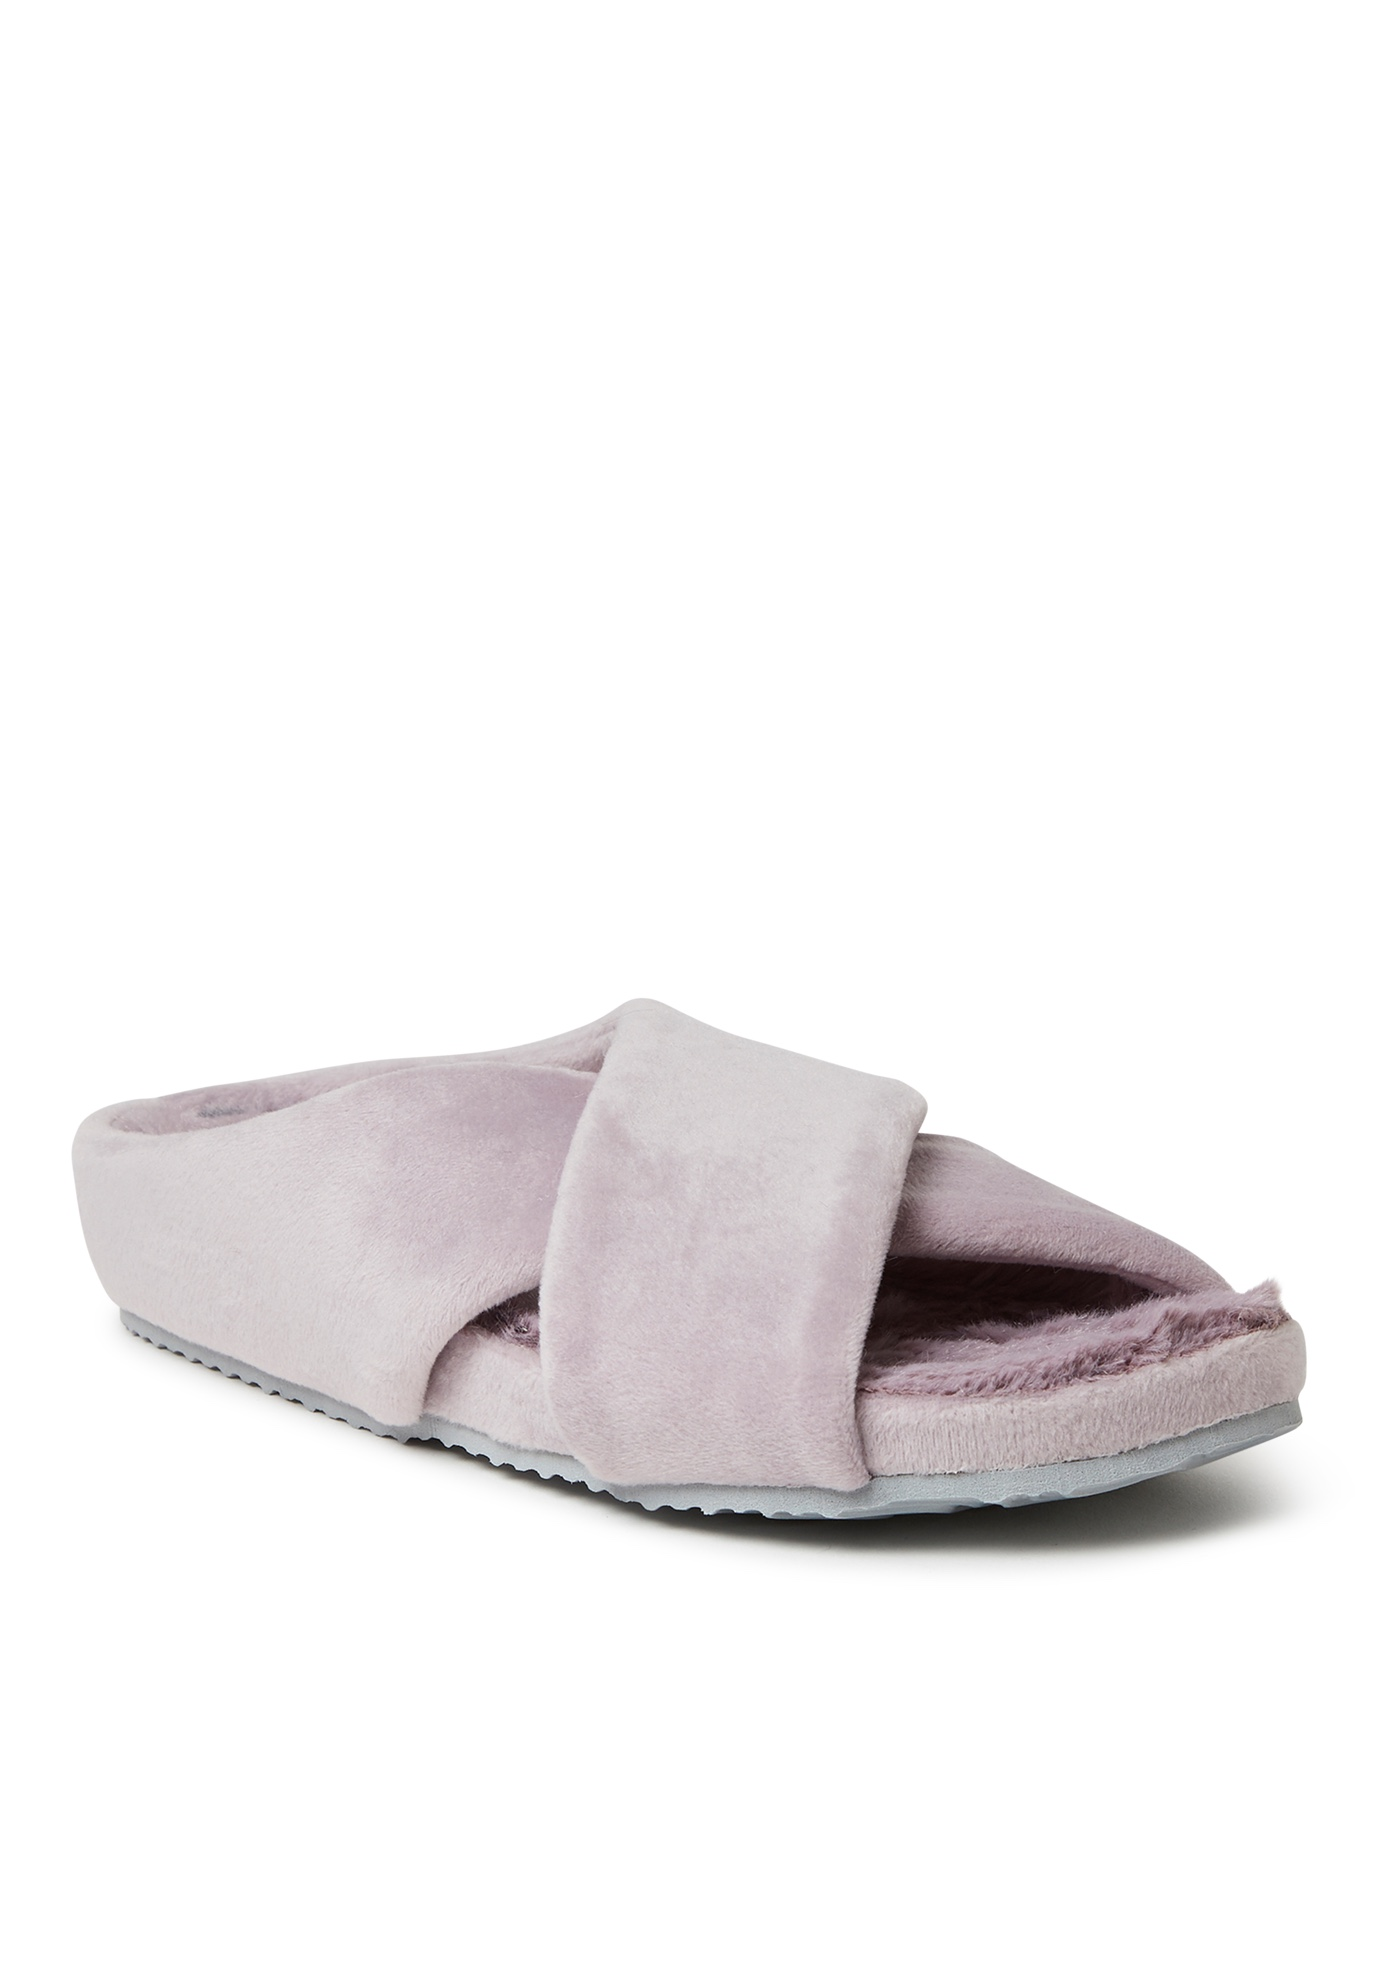 Maeve Velour Crisscross Molded Footbed Slide by Dearfoams,